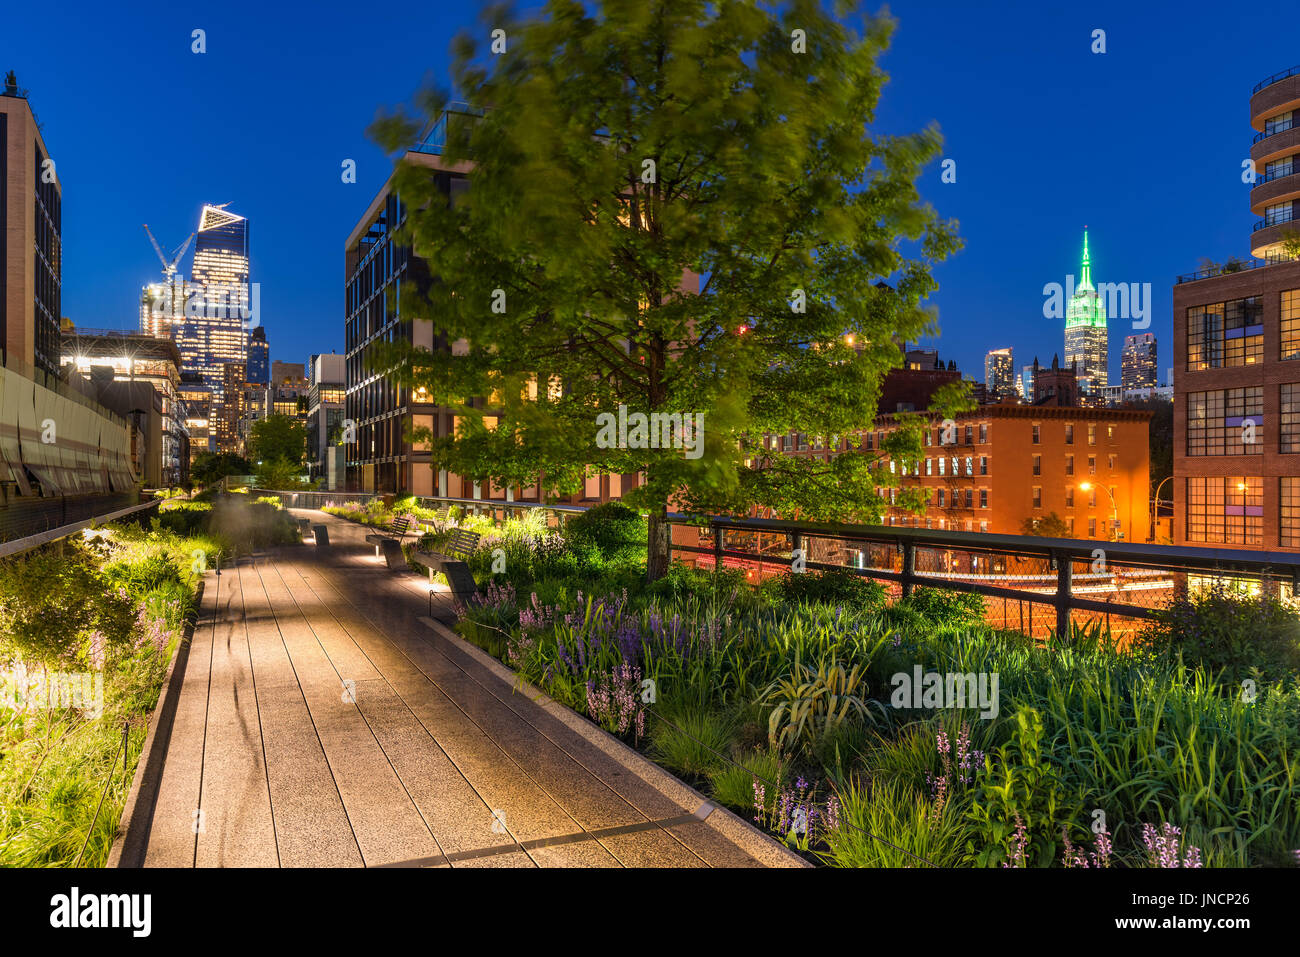 High Line promenade at twilight with city lights and illuminated skyscrapers. Chelsea, Manhattan, New York City - Stock Image